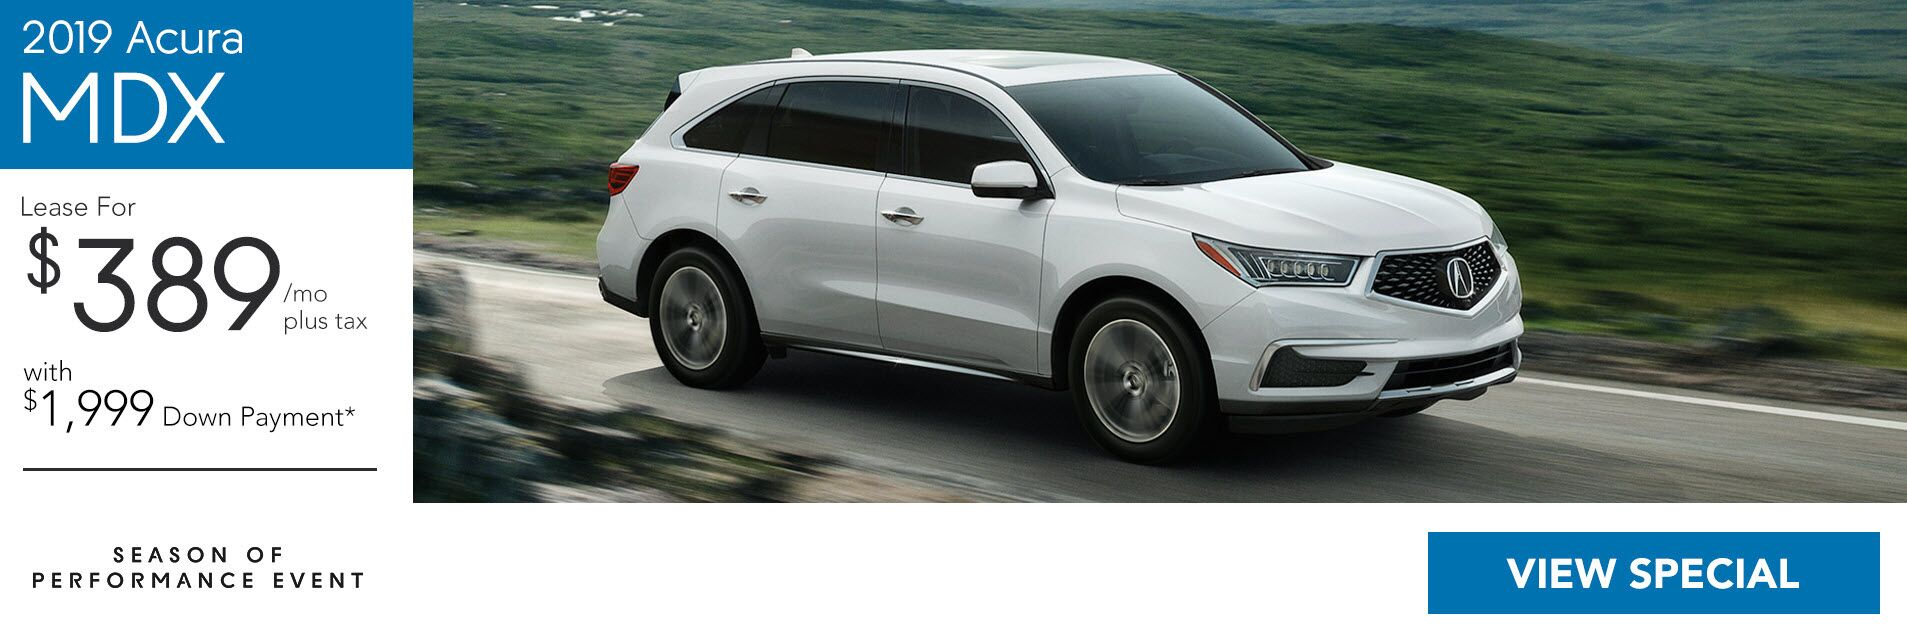 2019 Acura MDX for $389/36 Mo. with $1,999 Down